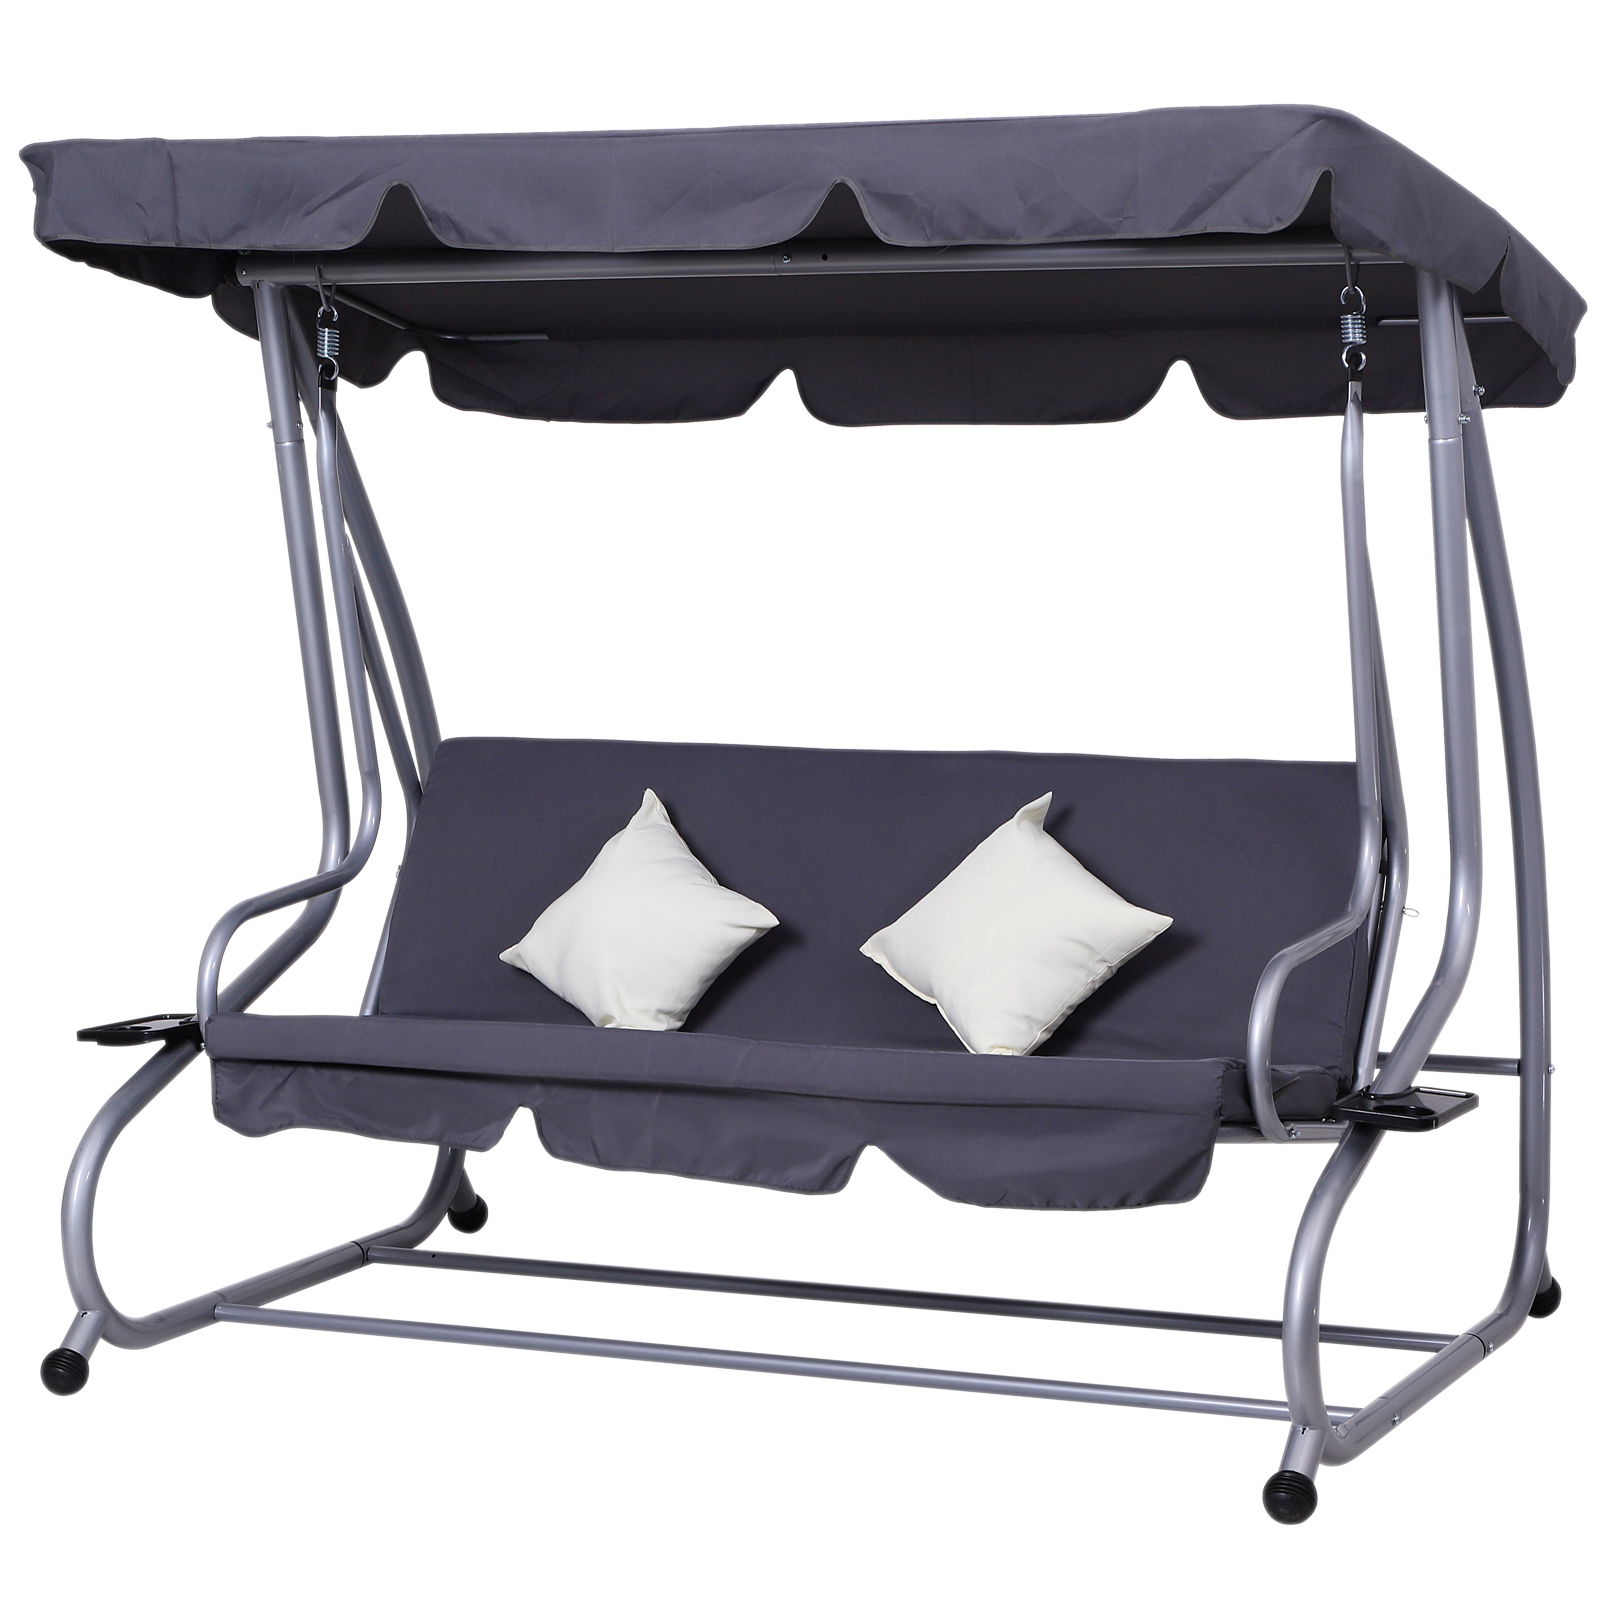 Outsunny Heavy Duty Metal 3 Seater Covered Outdoor Swing Chair Garden Hammock And Bed With Frame, Canopy And 2 Pillows (grey) Pertaining To Most Current 3 Seater Swings With Frame And Canopy (View 18 of 30)